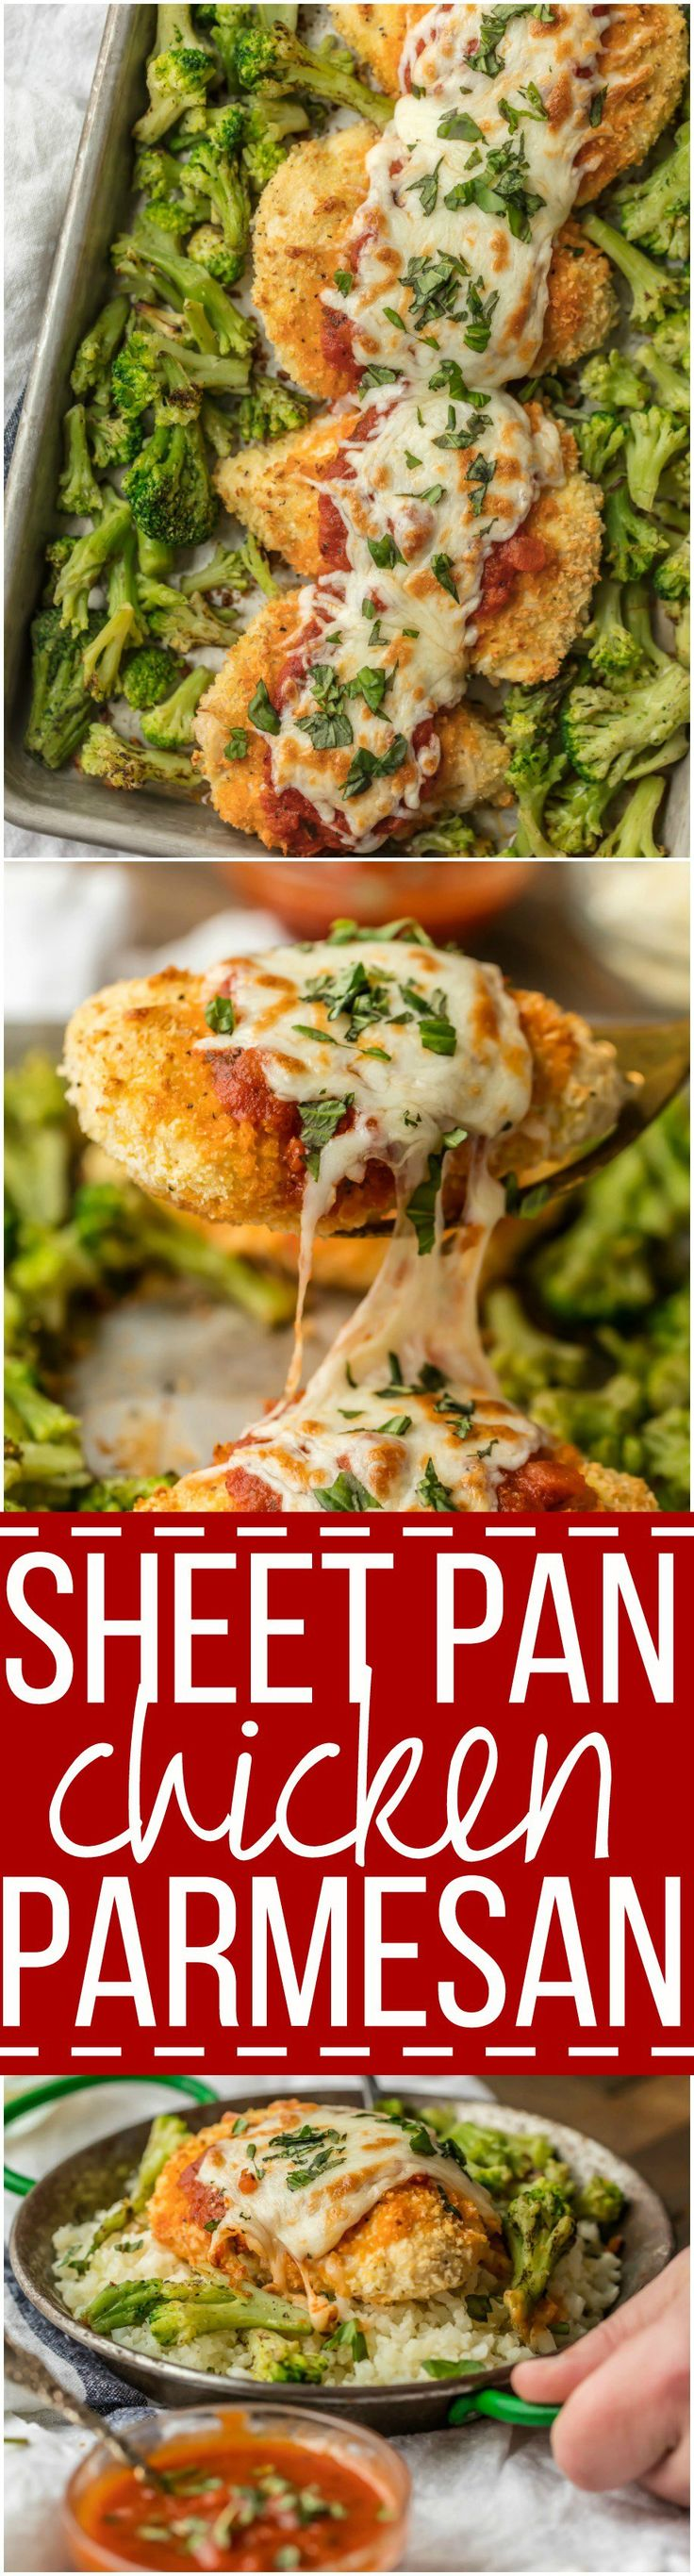 This amazing SHEET PAN CHICKEN PARMESAN with roasted broccoli and riced cauliflower is SO easy and an instant family favorite. Healthy Baked Chicken Parmesan topped with marinara, melty mozzarella, and fresh basil...what could be better?